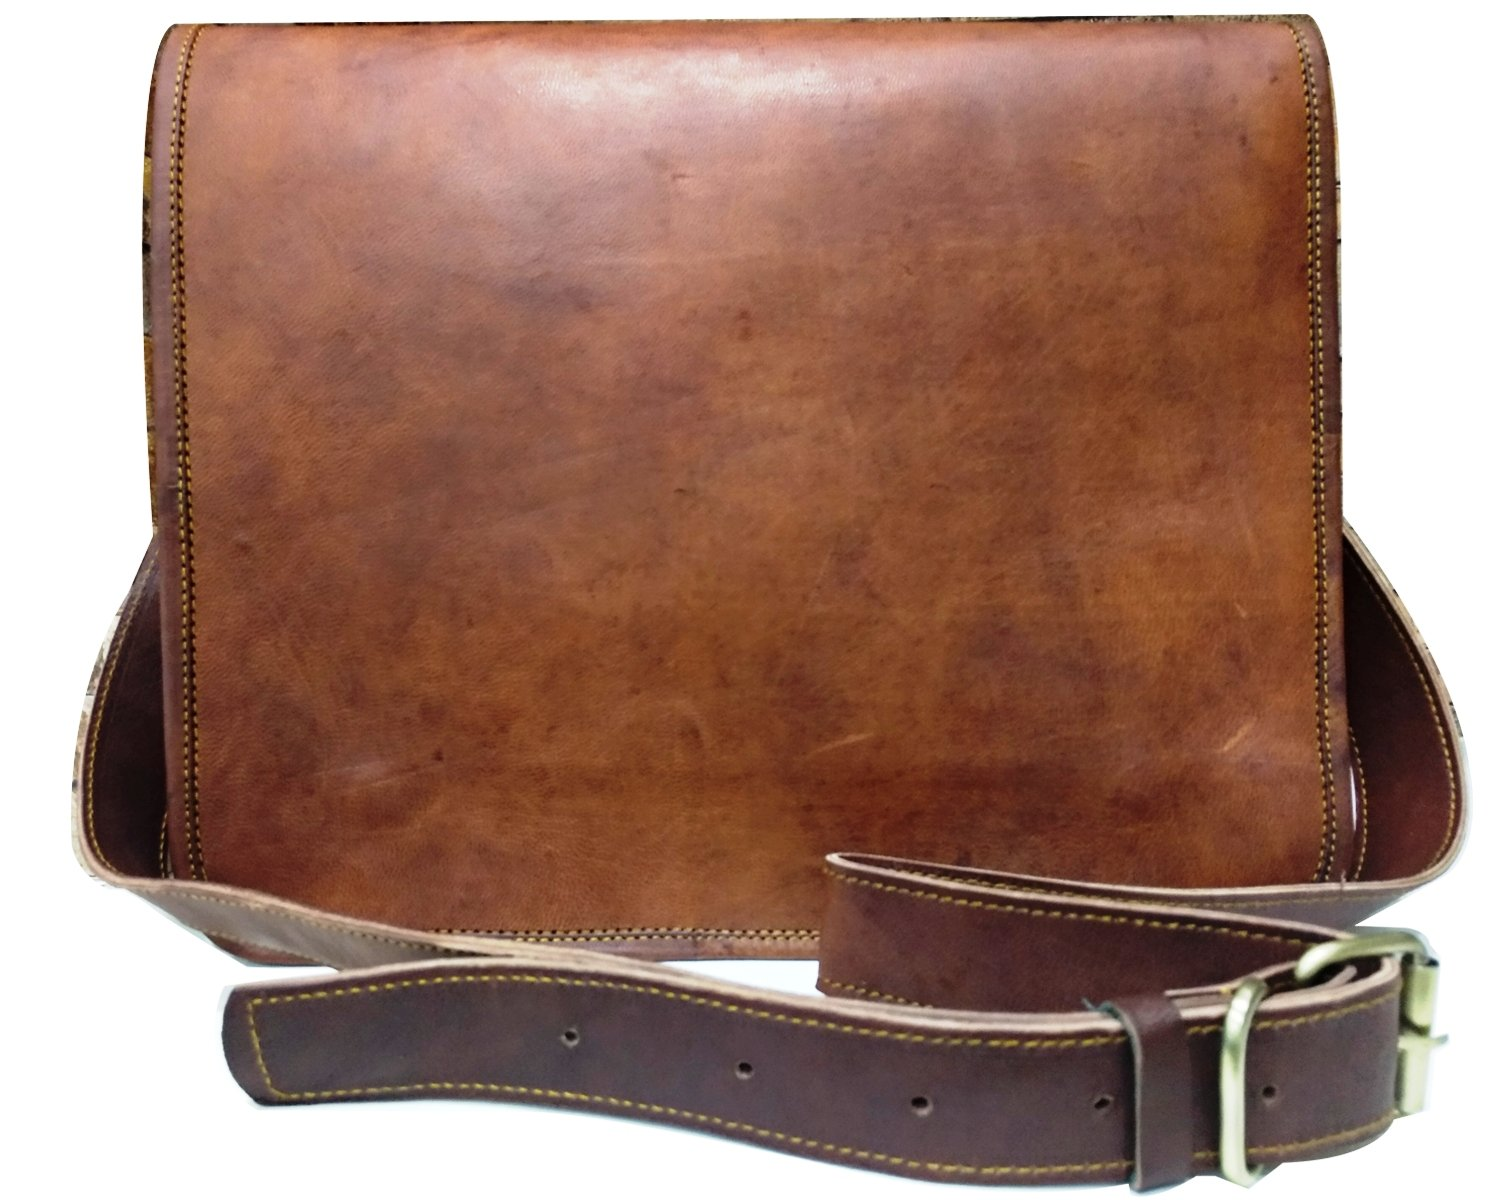 Leather Full Flap Messenger Handmade Bag Laptop Bag Messenger School Bag 15X11X3.5Inches